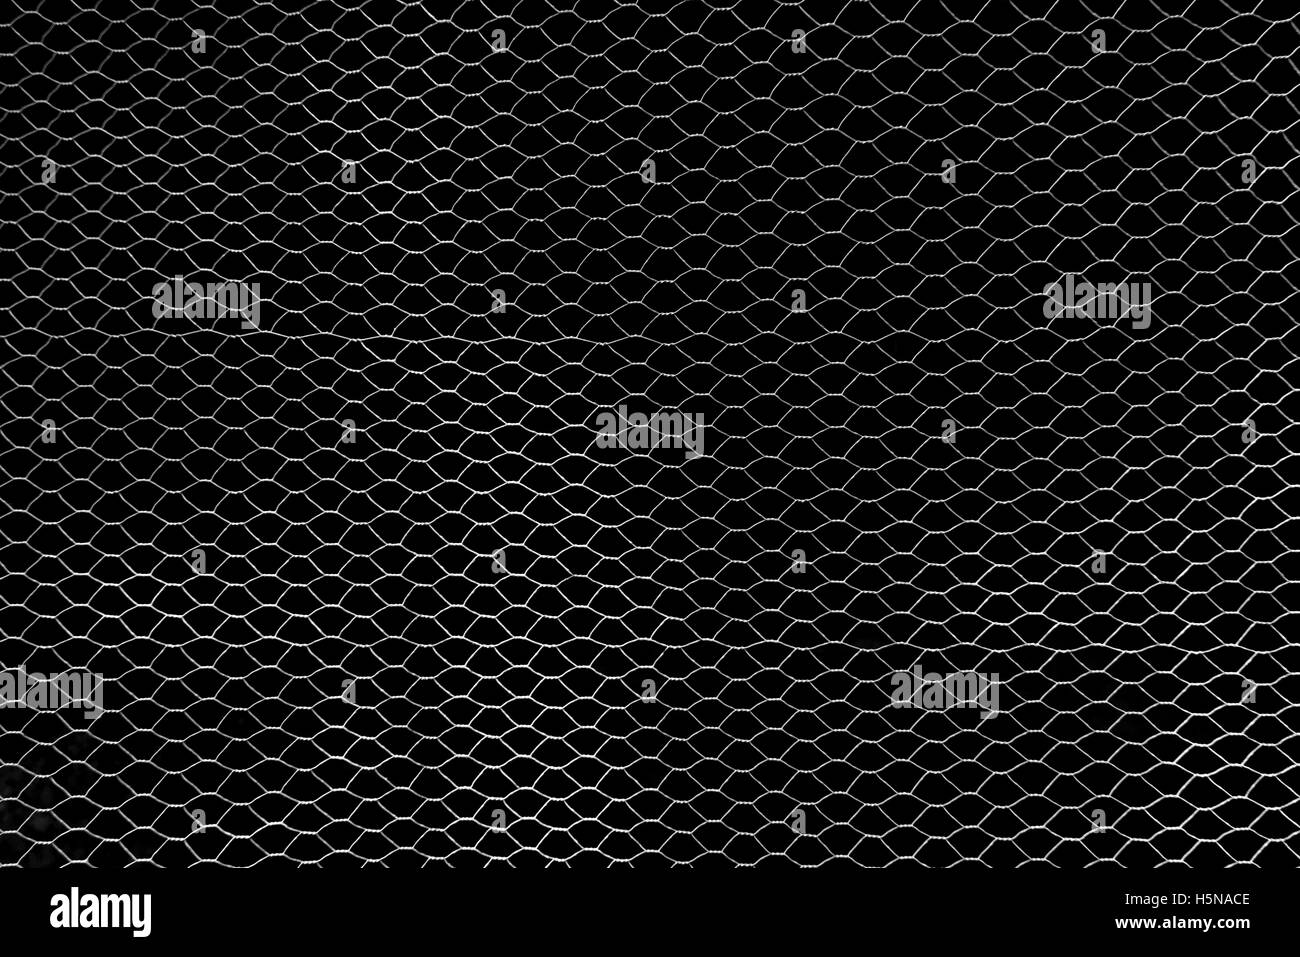 Fine Wire Mesh Stock Photos & Fine Wire Mesh Stock Images - Alamy